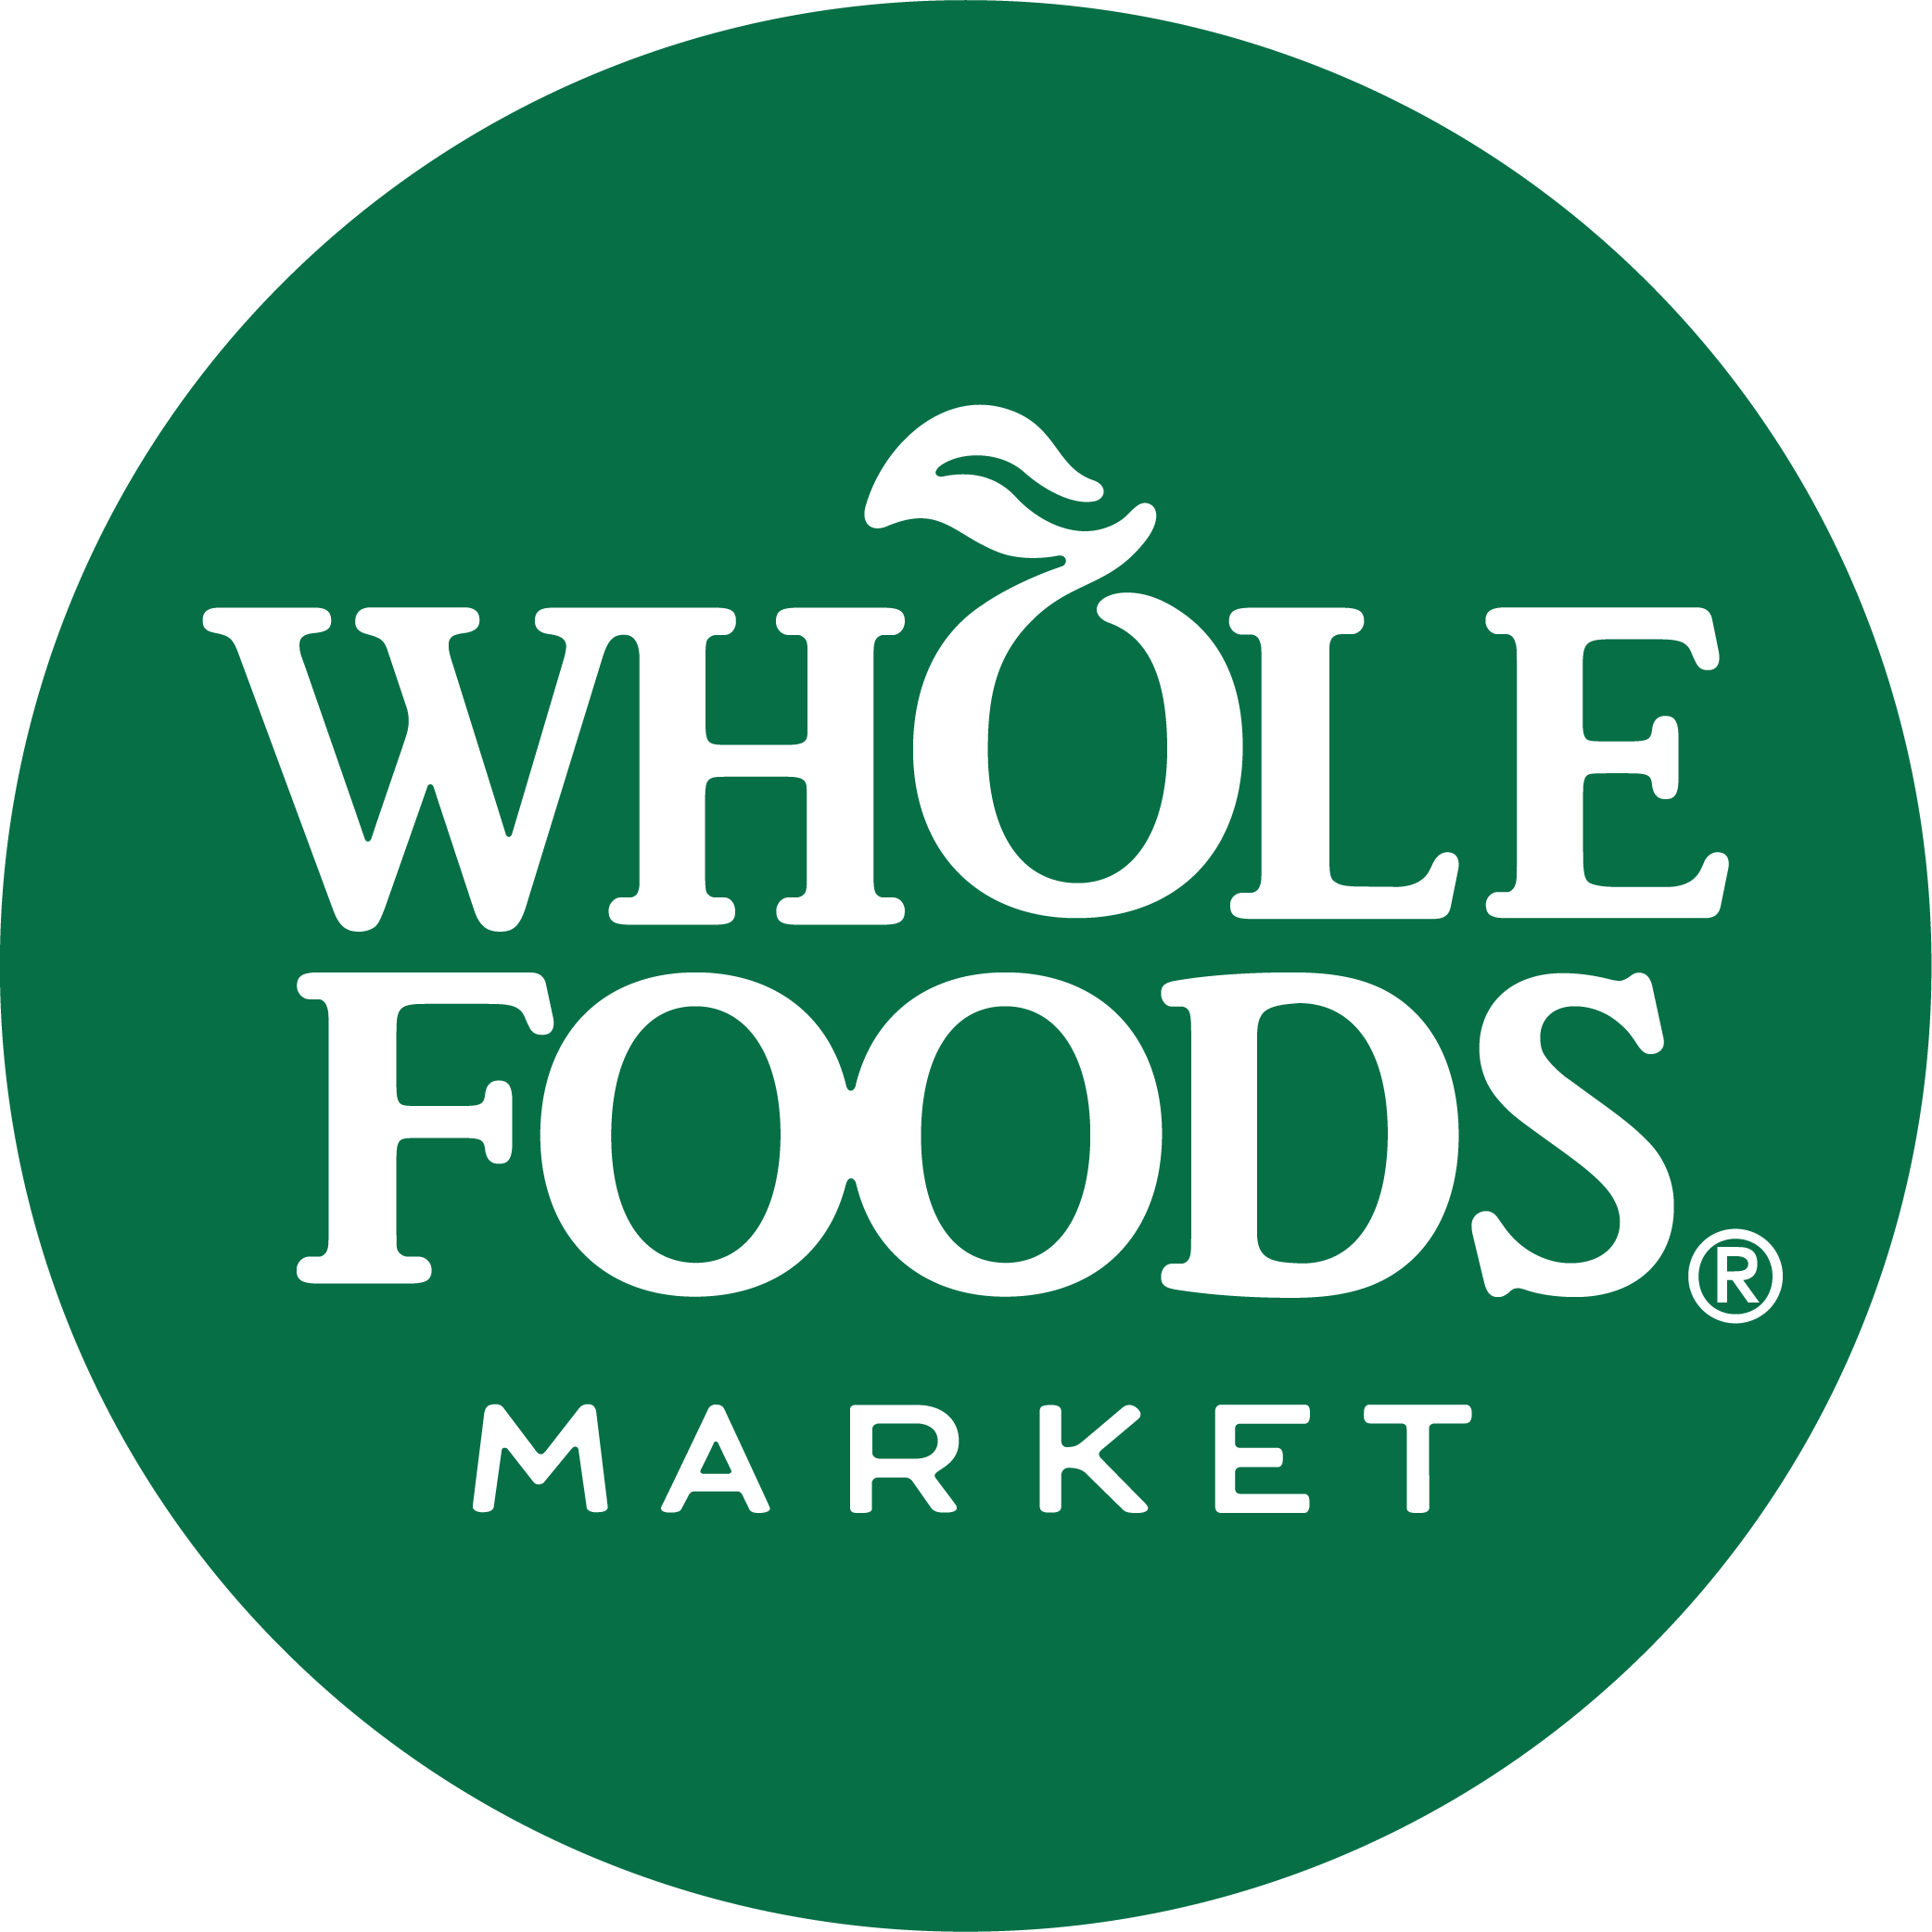 whole-foods-market-logo-vector (1).png